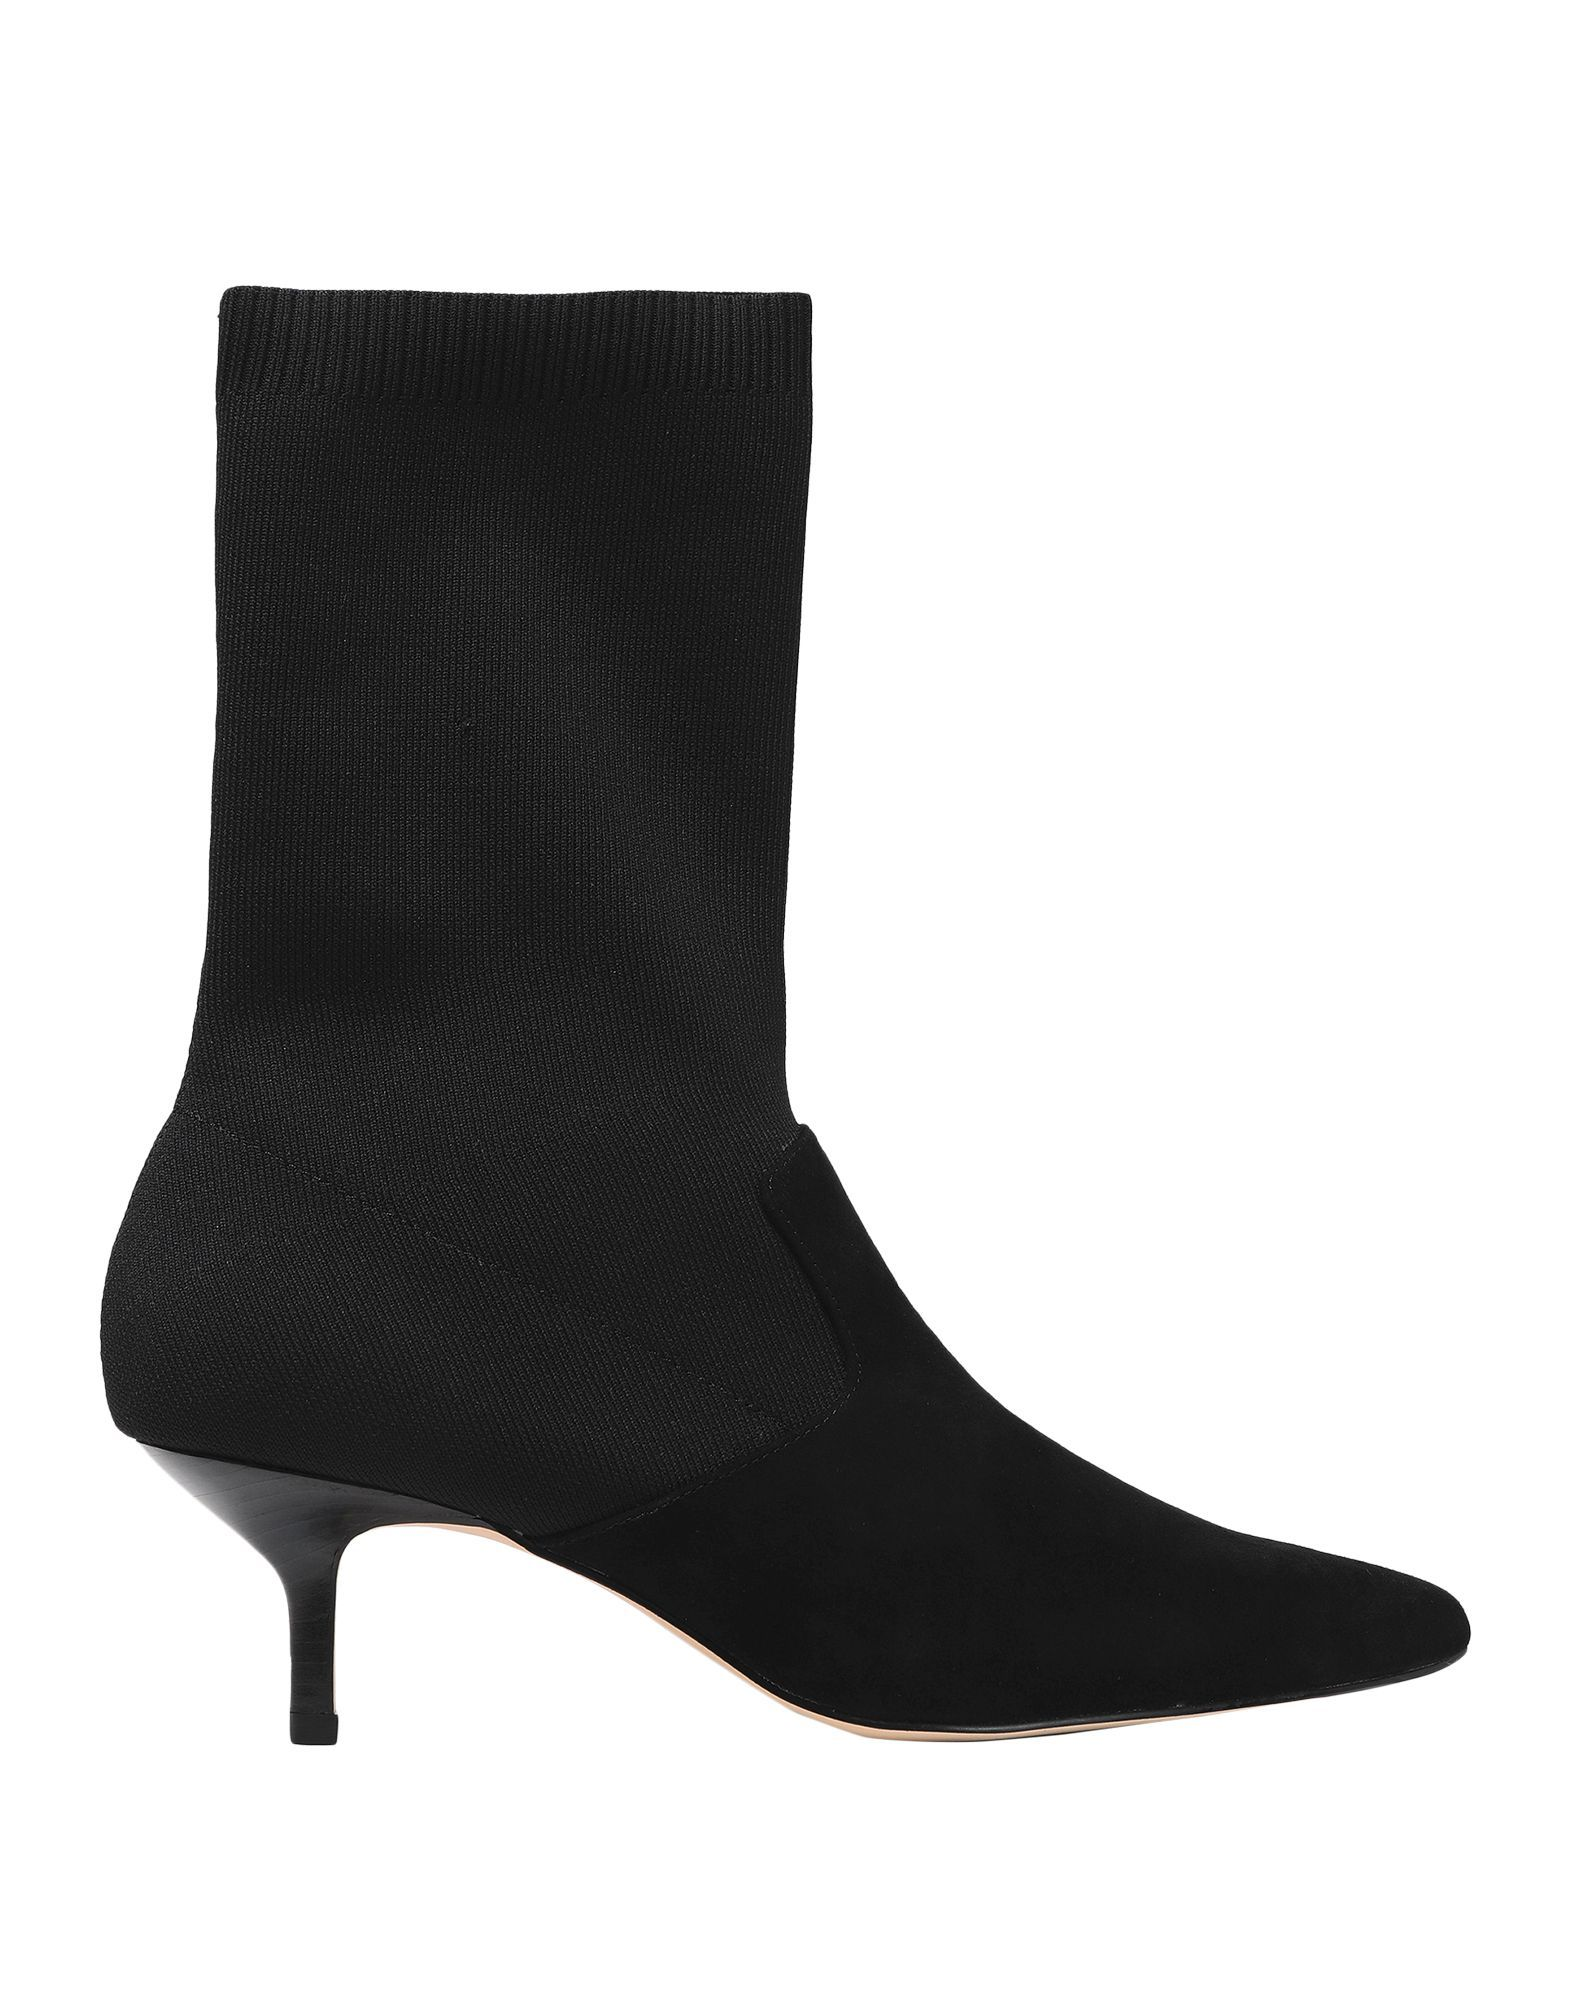 Halston Black Leather Ankle Boots